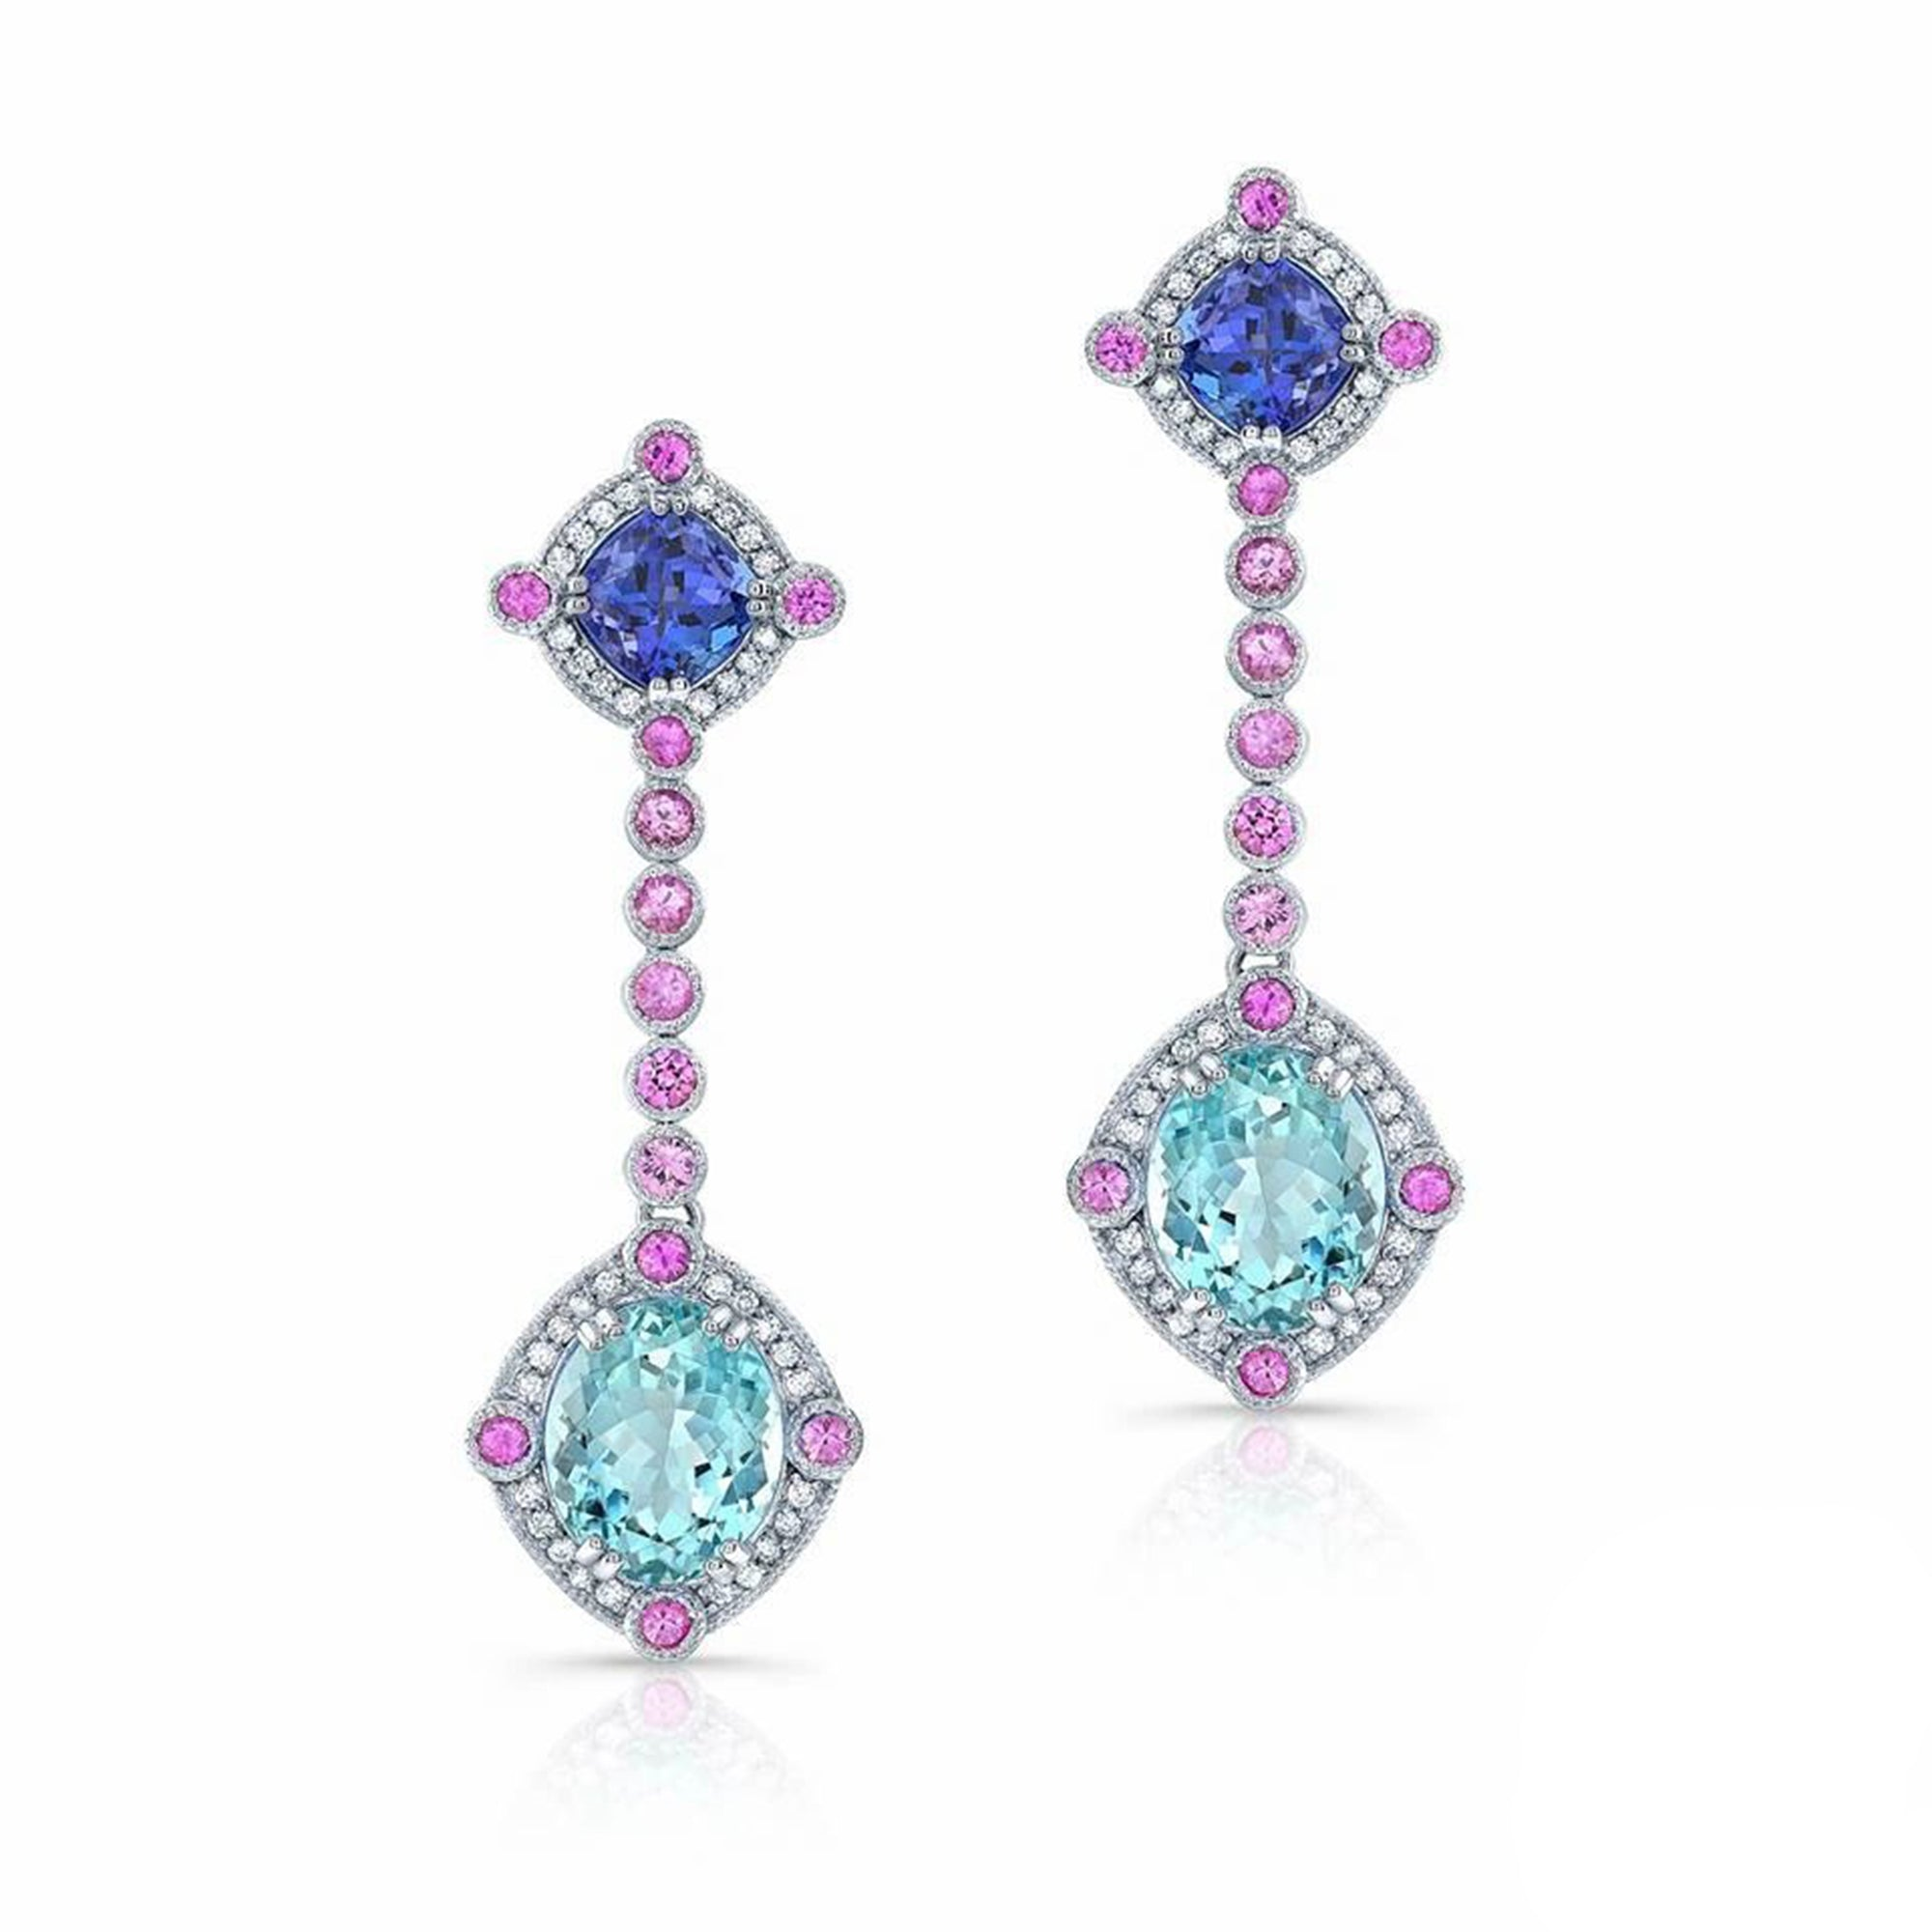 Aquamarine, Tanzanite and Pink Sapphire, 18k White Gold Earrings - Talisman Collection Fine Jewelers